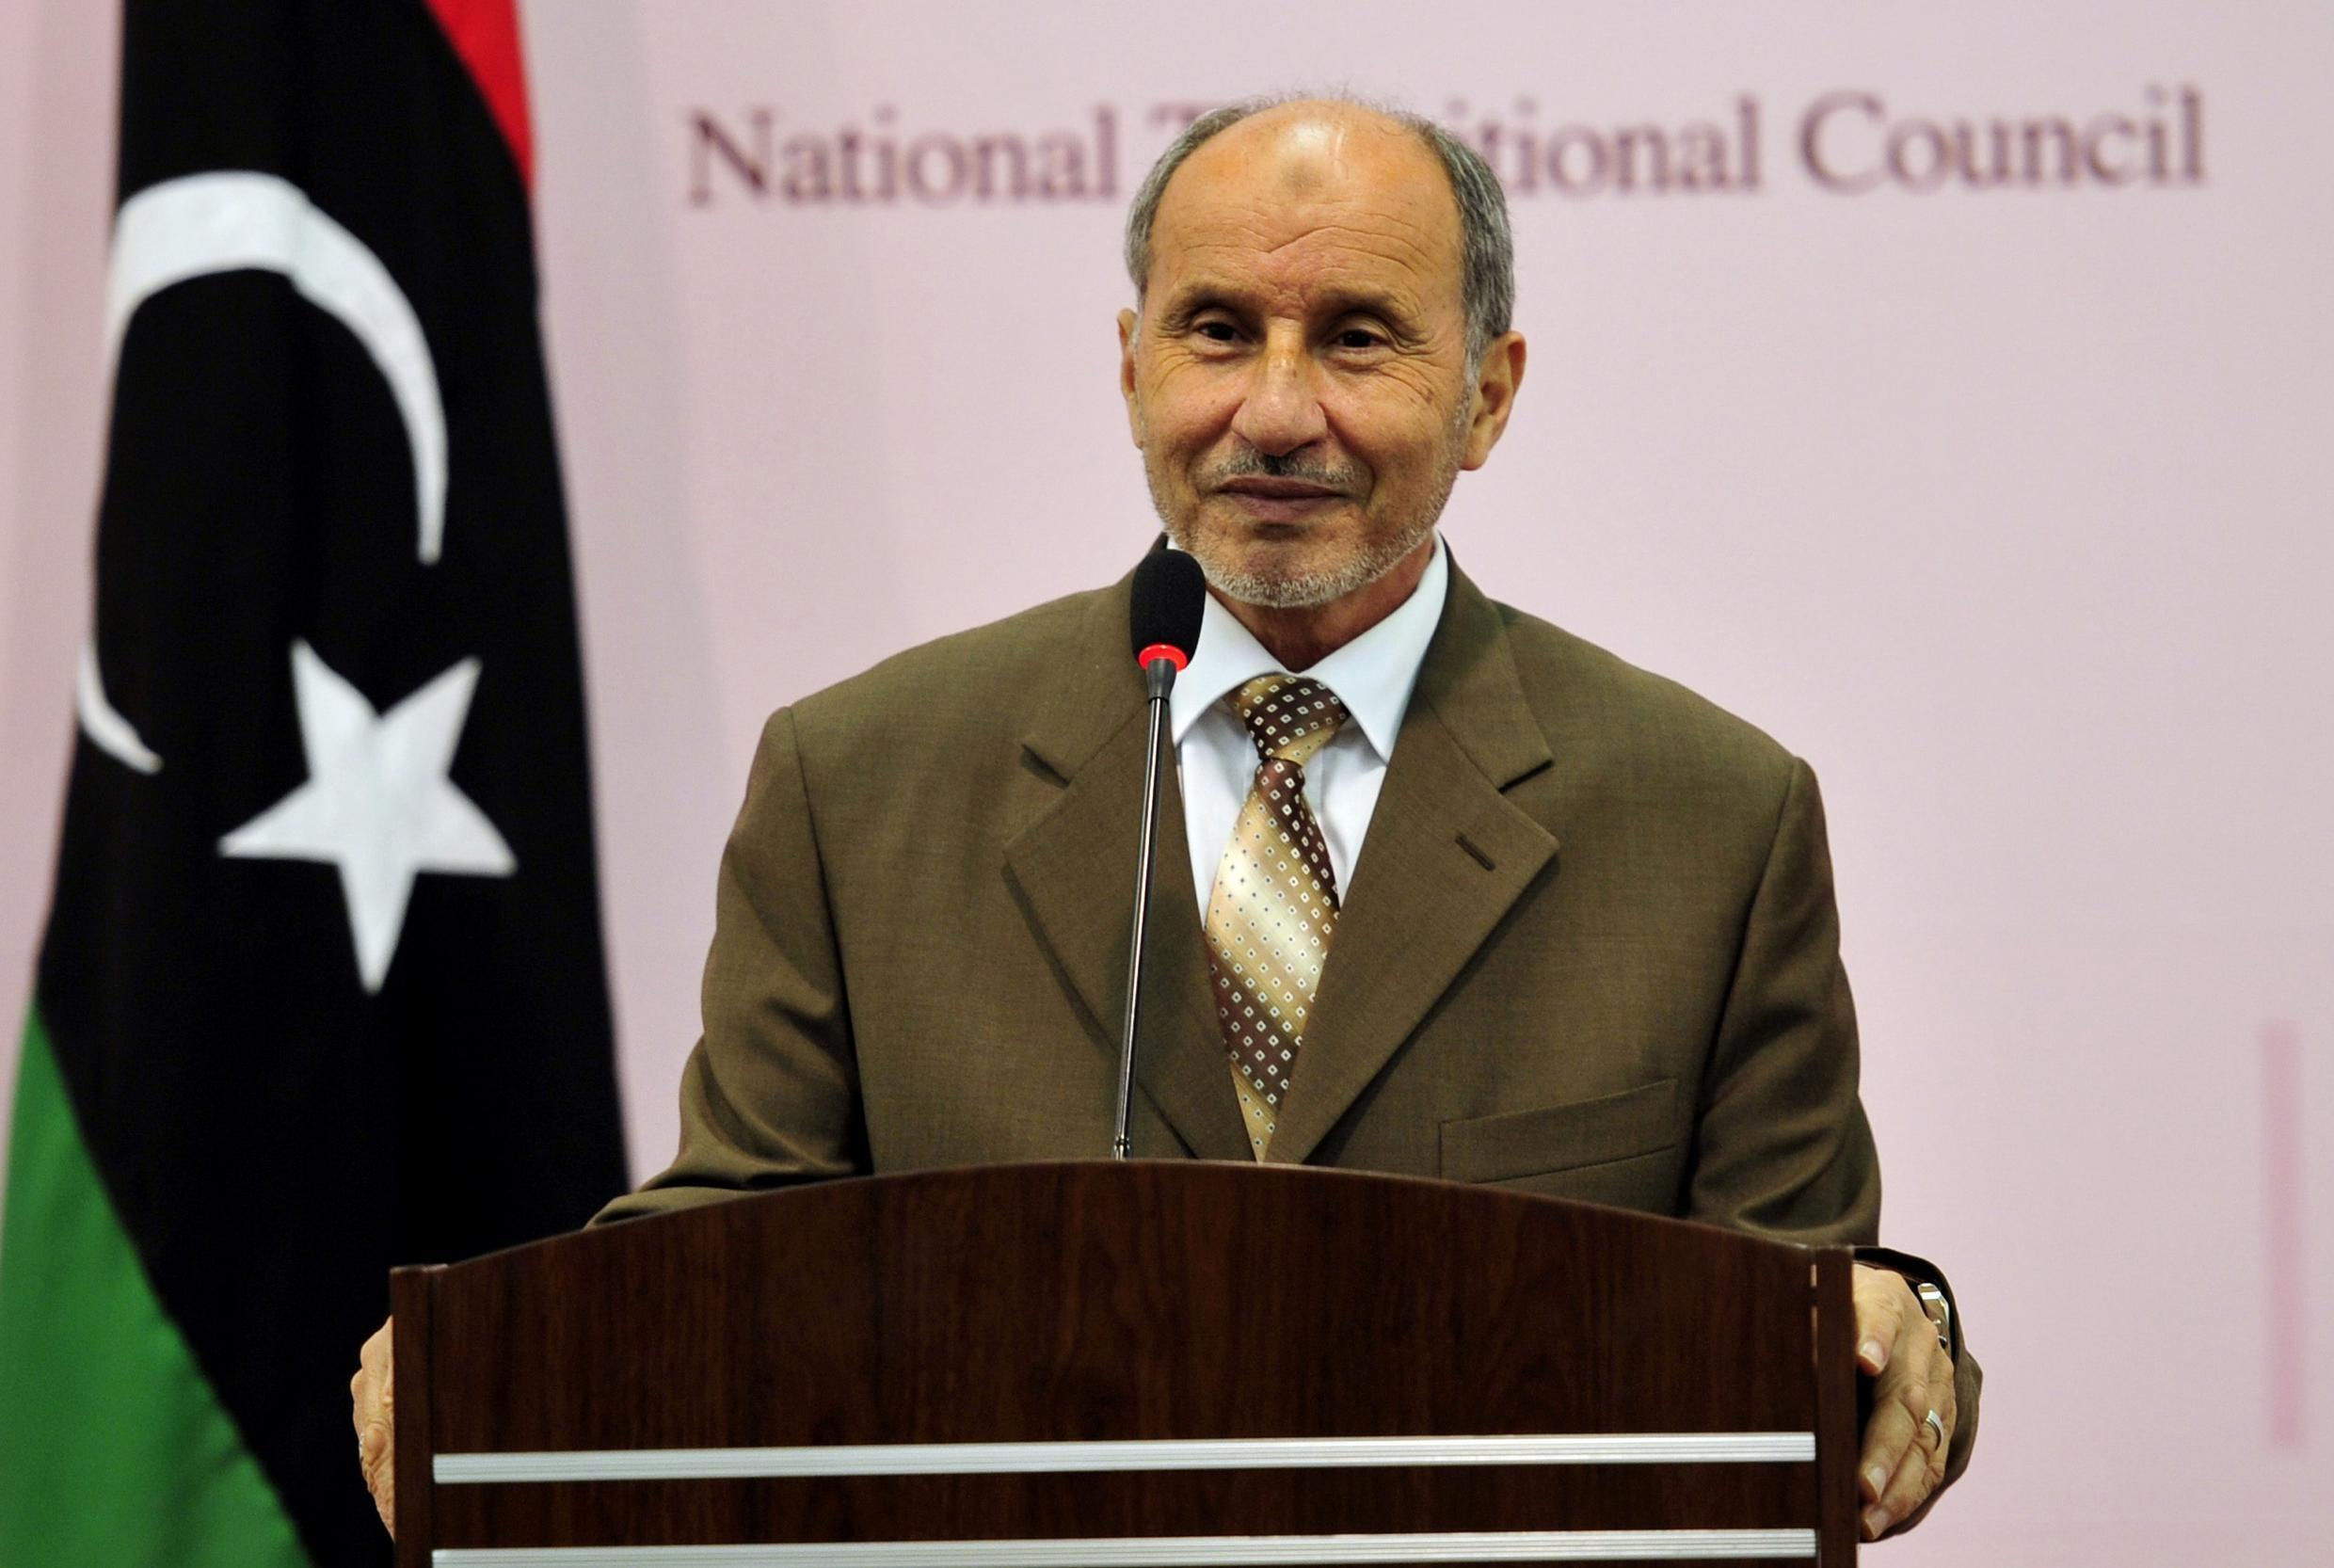 Mustafa Abdel Jalil, chairman of the Libyan National Transitional Council (NTC), attends a news conference in Benghazi August 30, 2011.